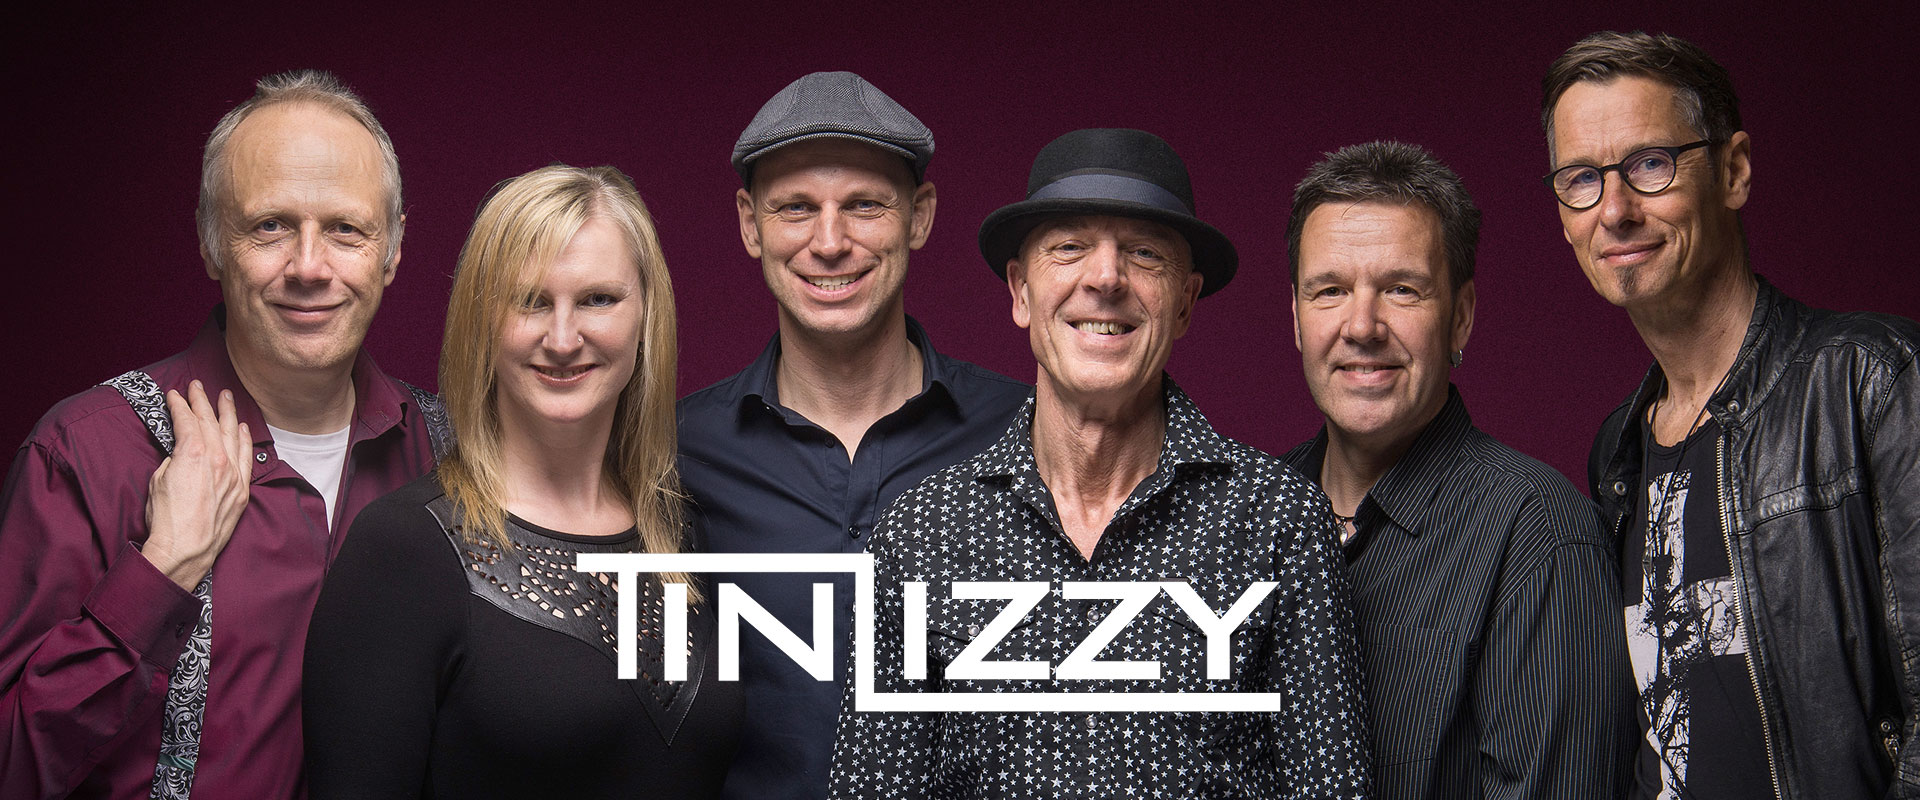 Tin Lizzy Coverband